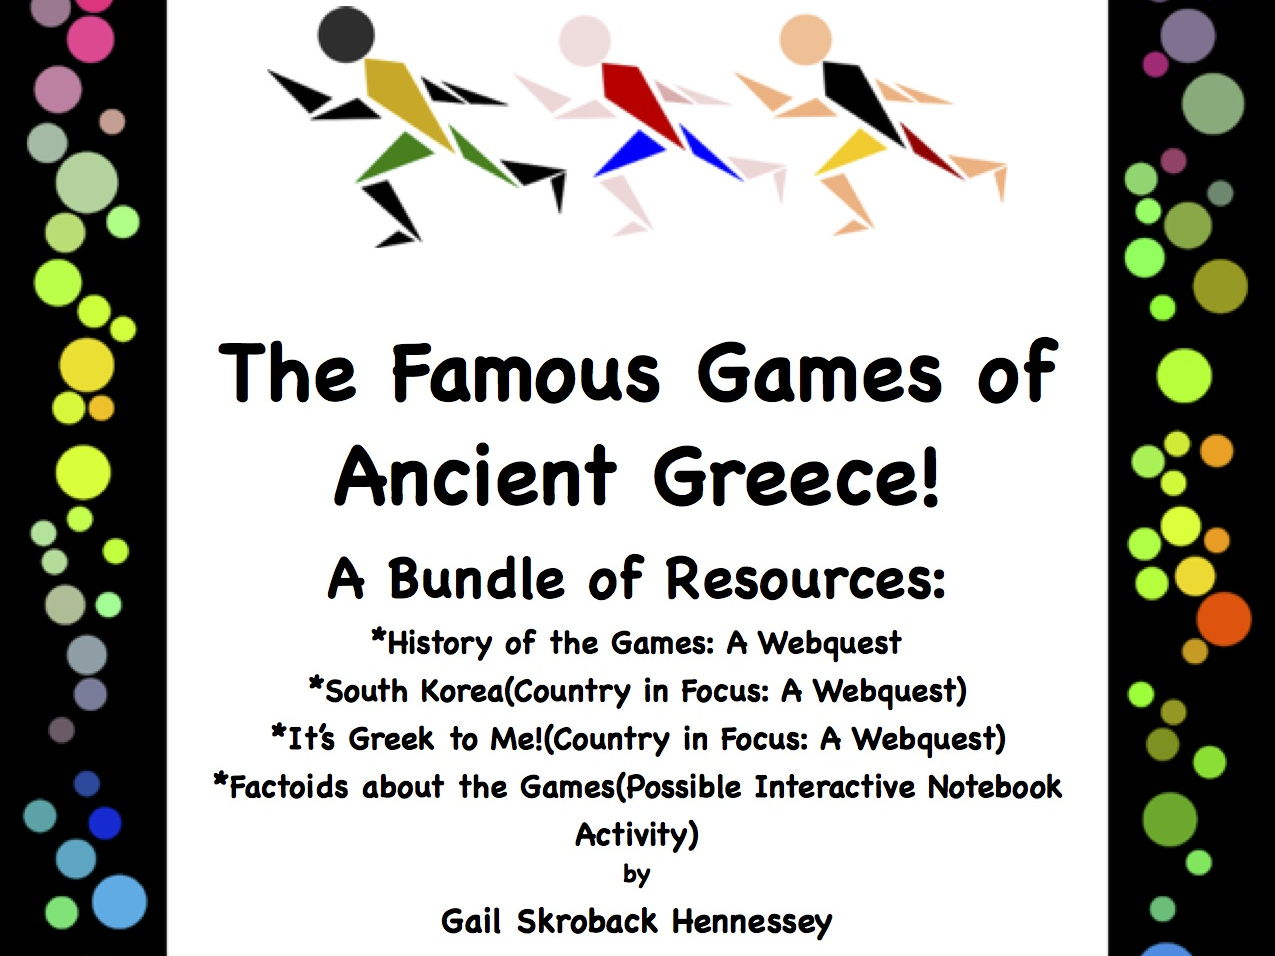 The Famous Games of Ancient Greece: A Bundle